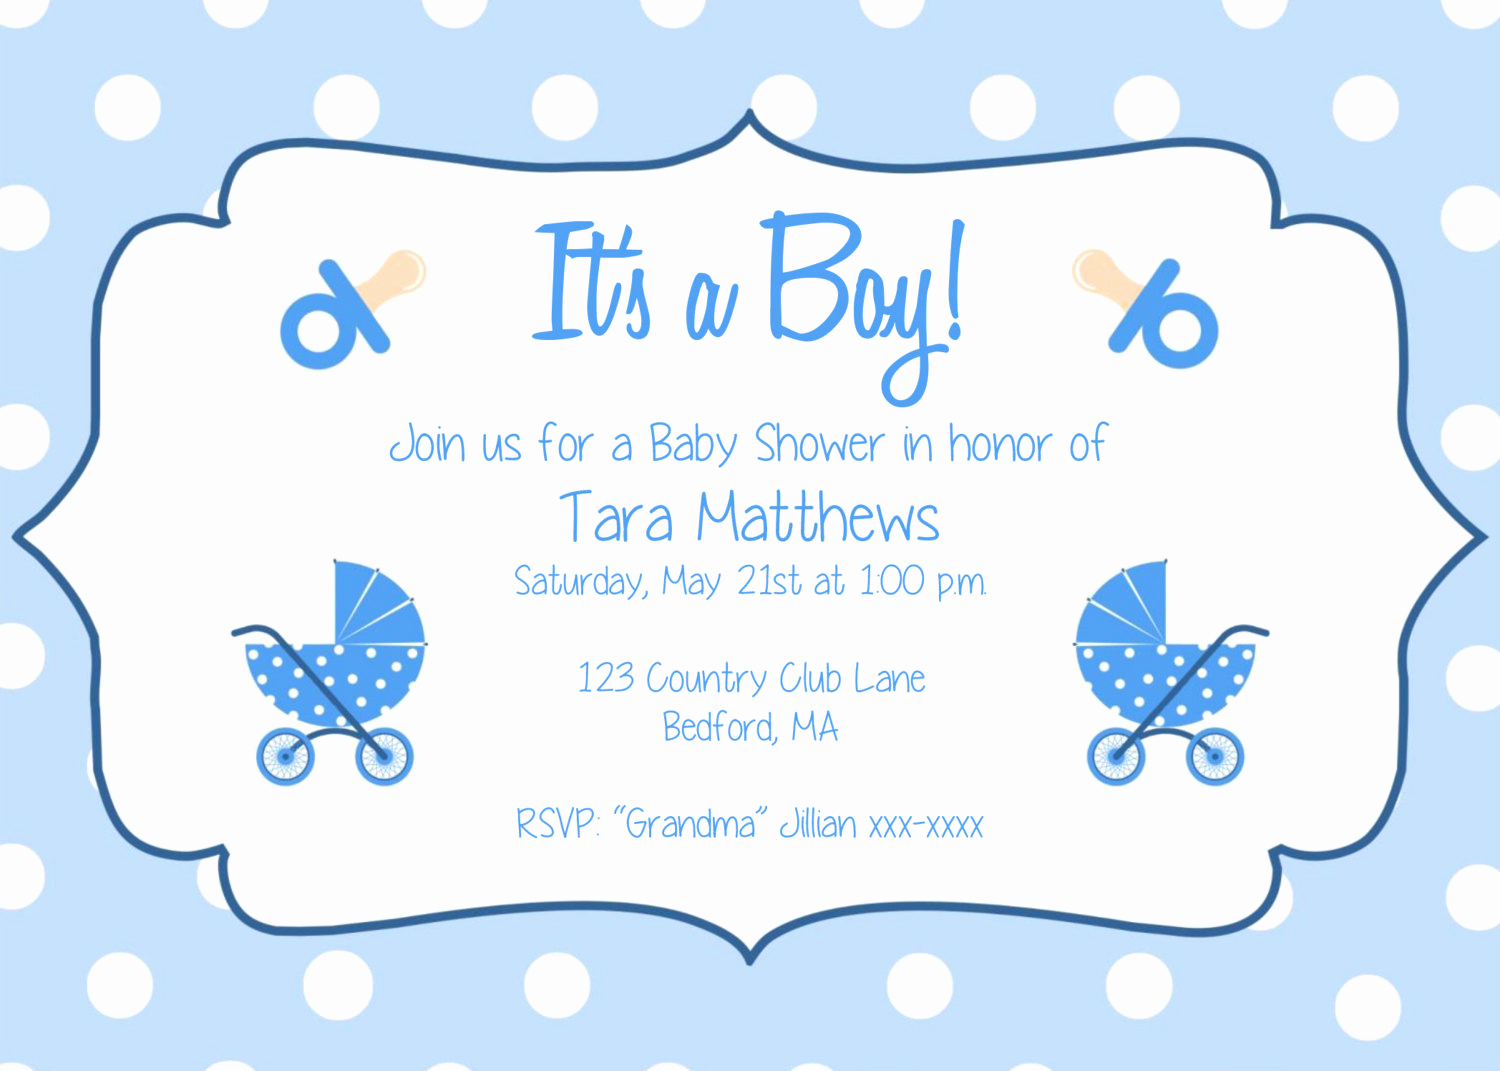 Free Baby Shower Templates New Baby Shower Invitations for Boys Free Templates